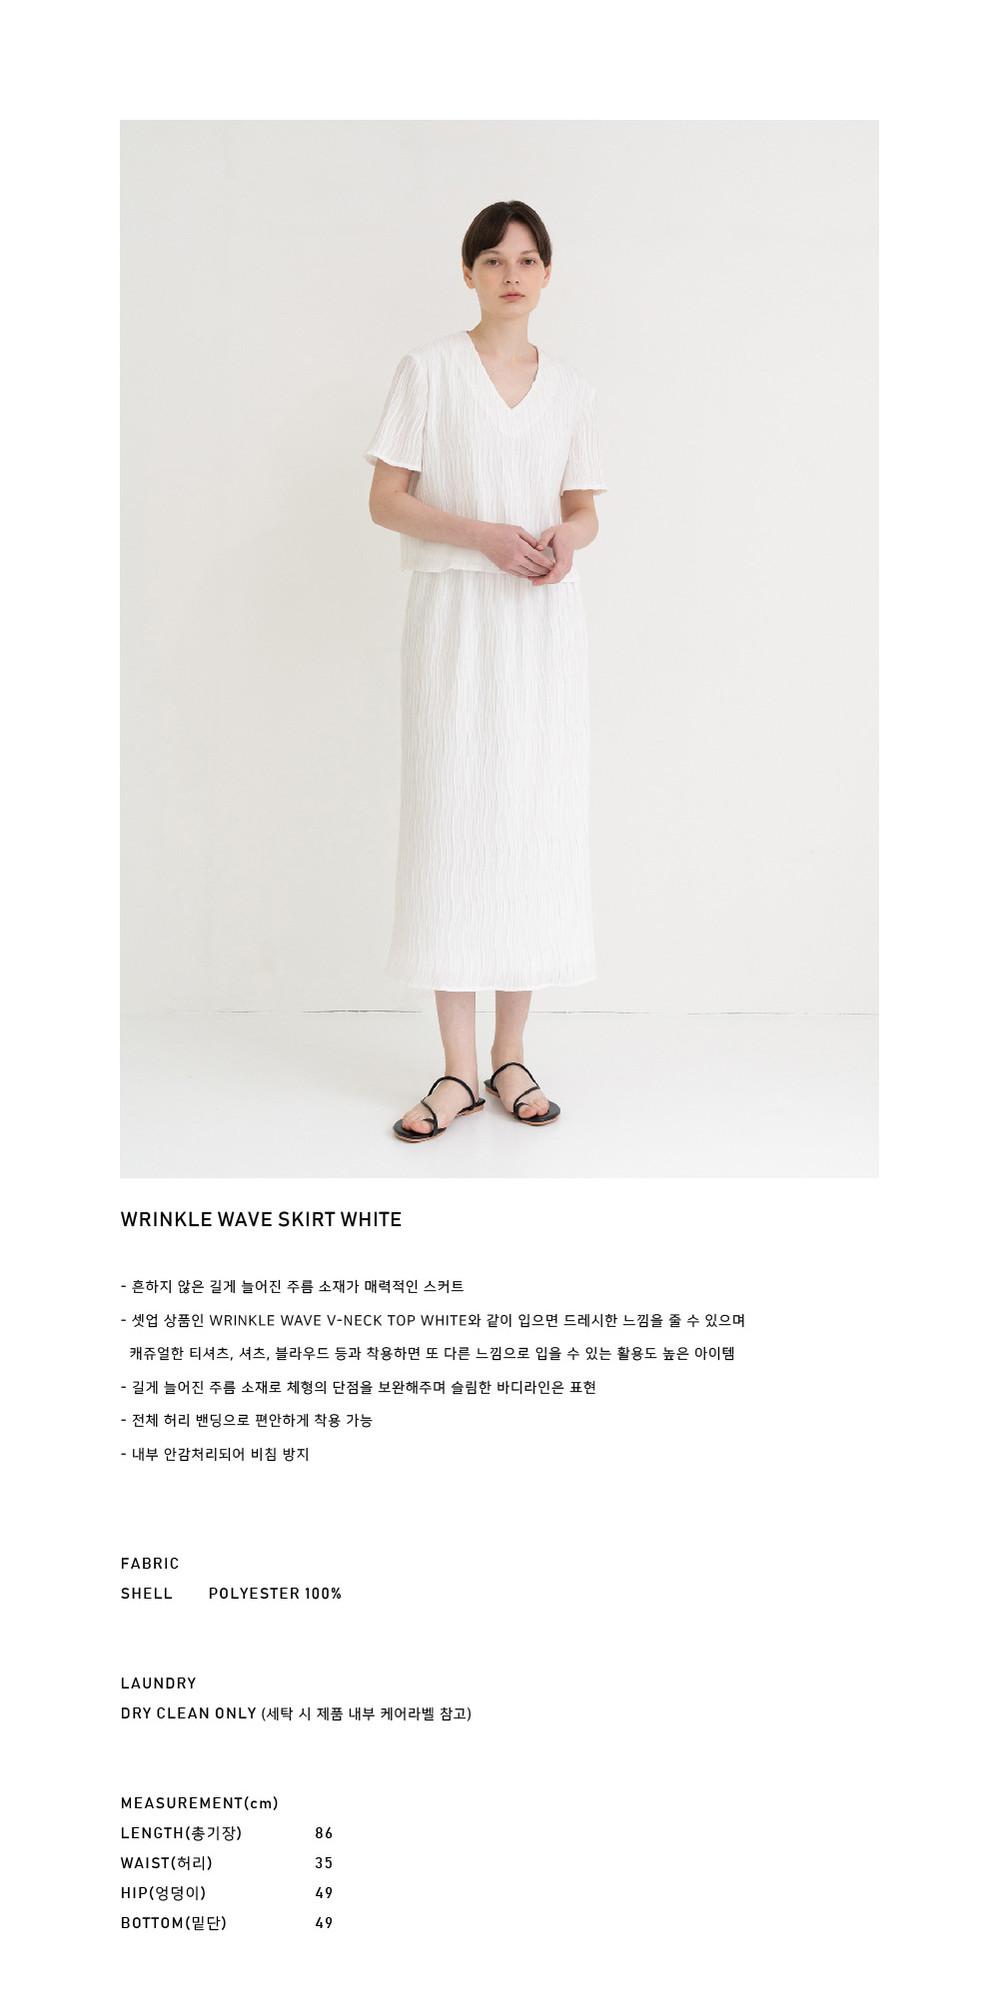 WRINKLE WAVE SKIRT WHITE